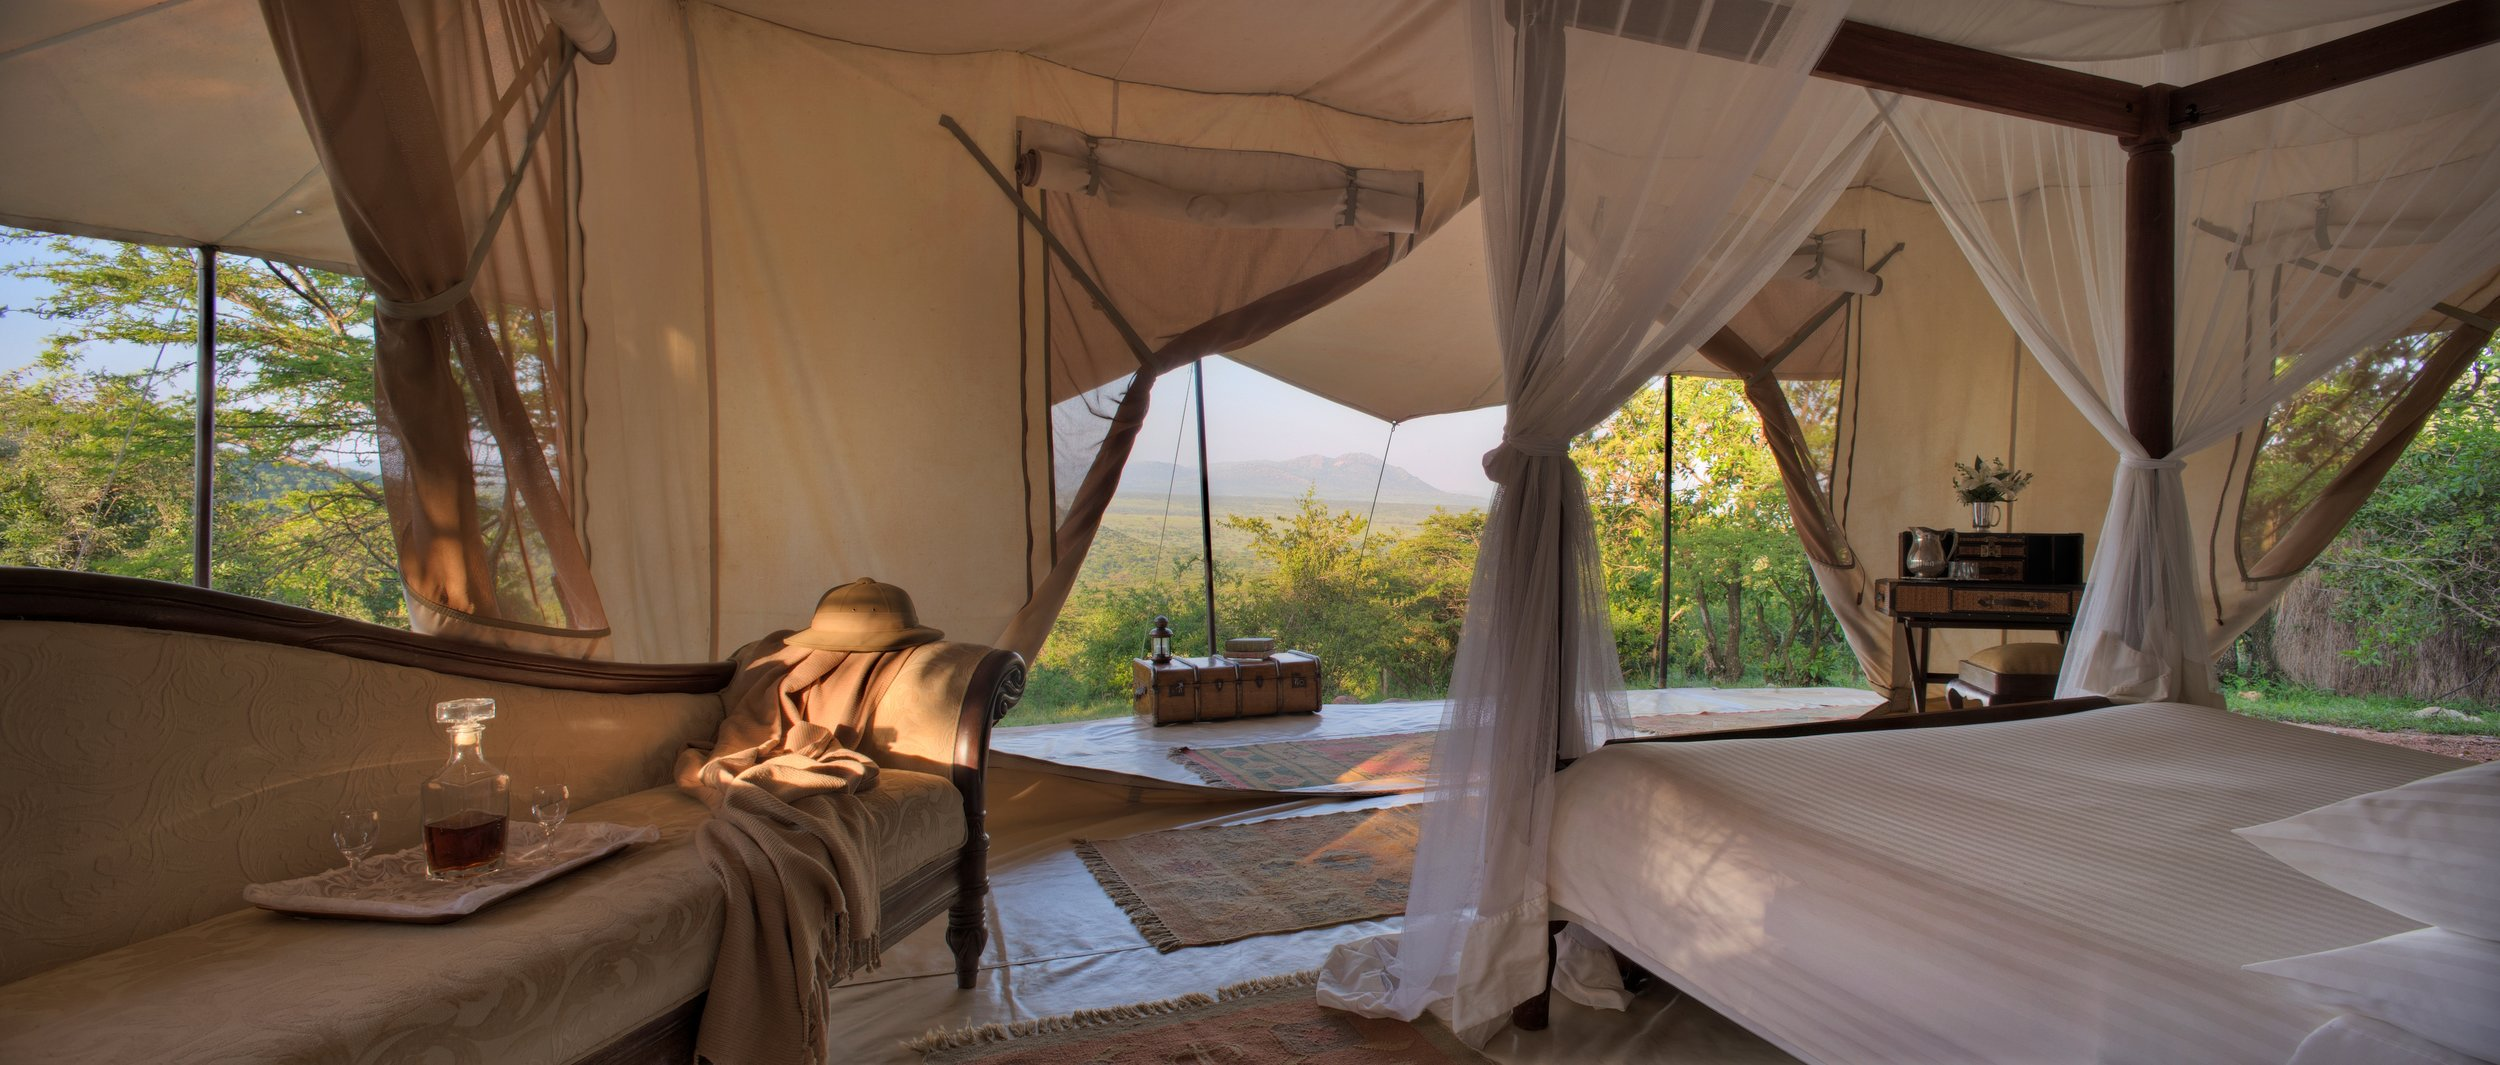 Cottars - double tent.JPG